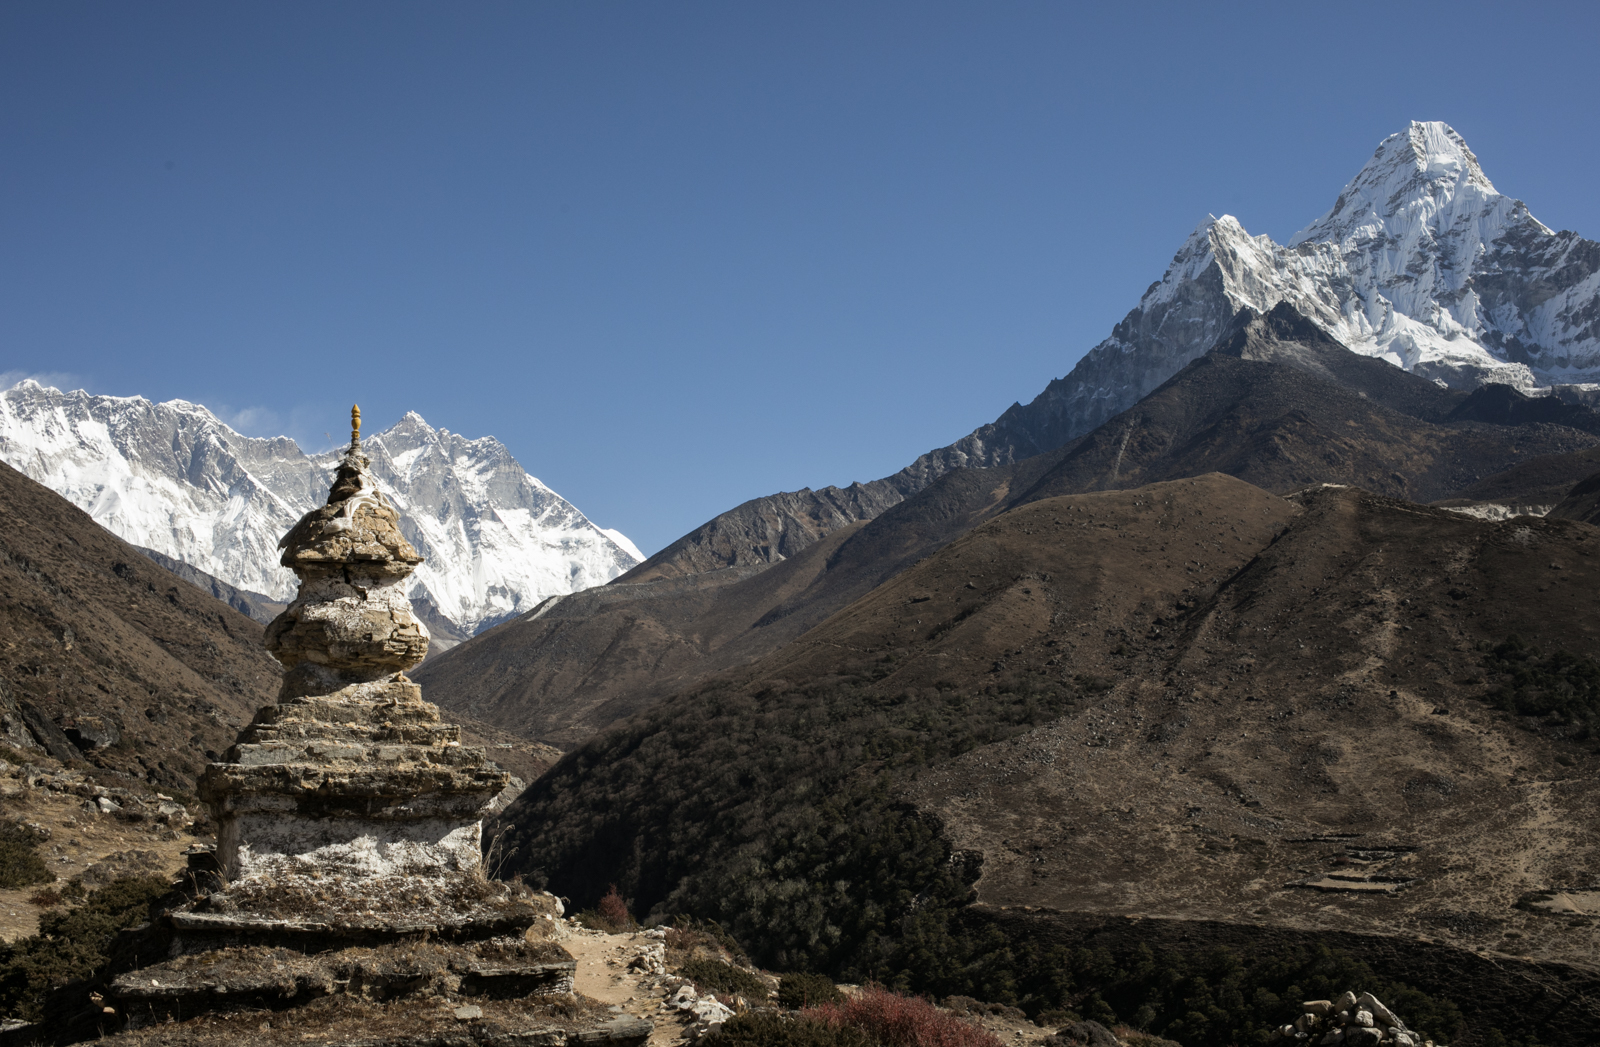 An old stupa is aged by the weather. On this side of the valley the landmarks feel ancient, as though it was less touched by tourism and more in line with what the local people created for themselves.